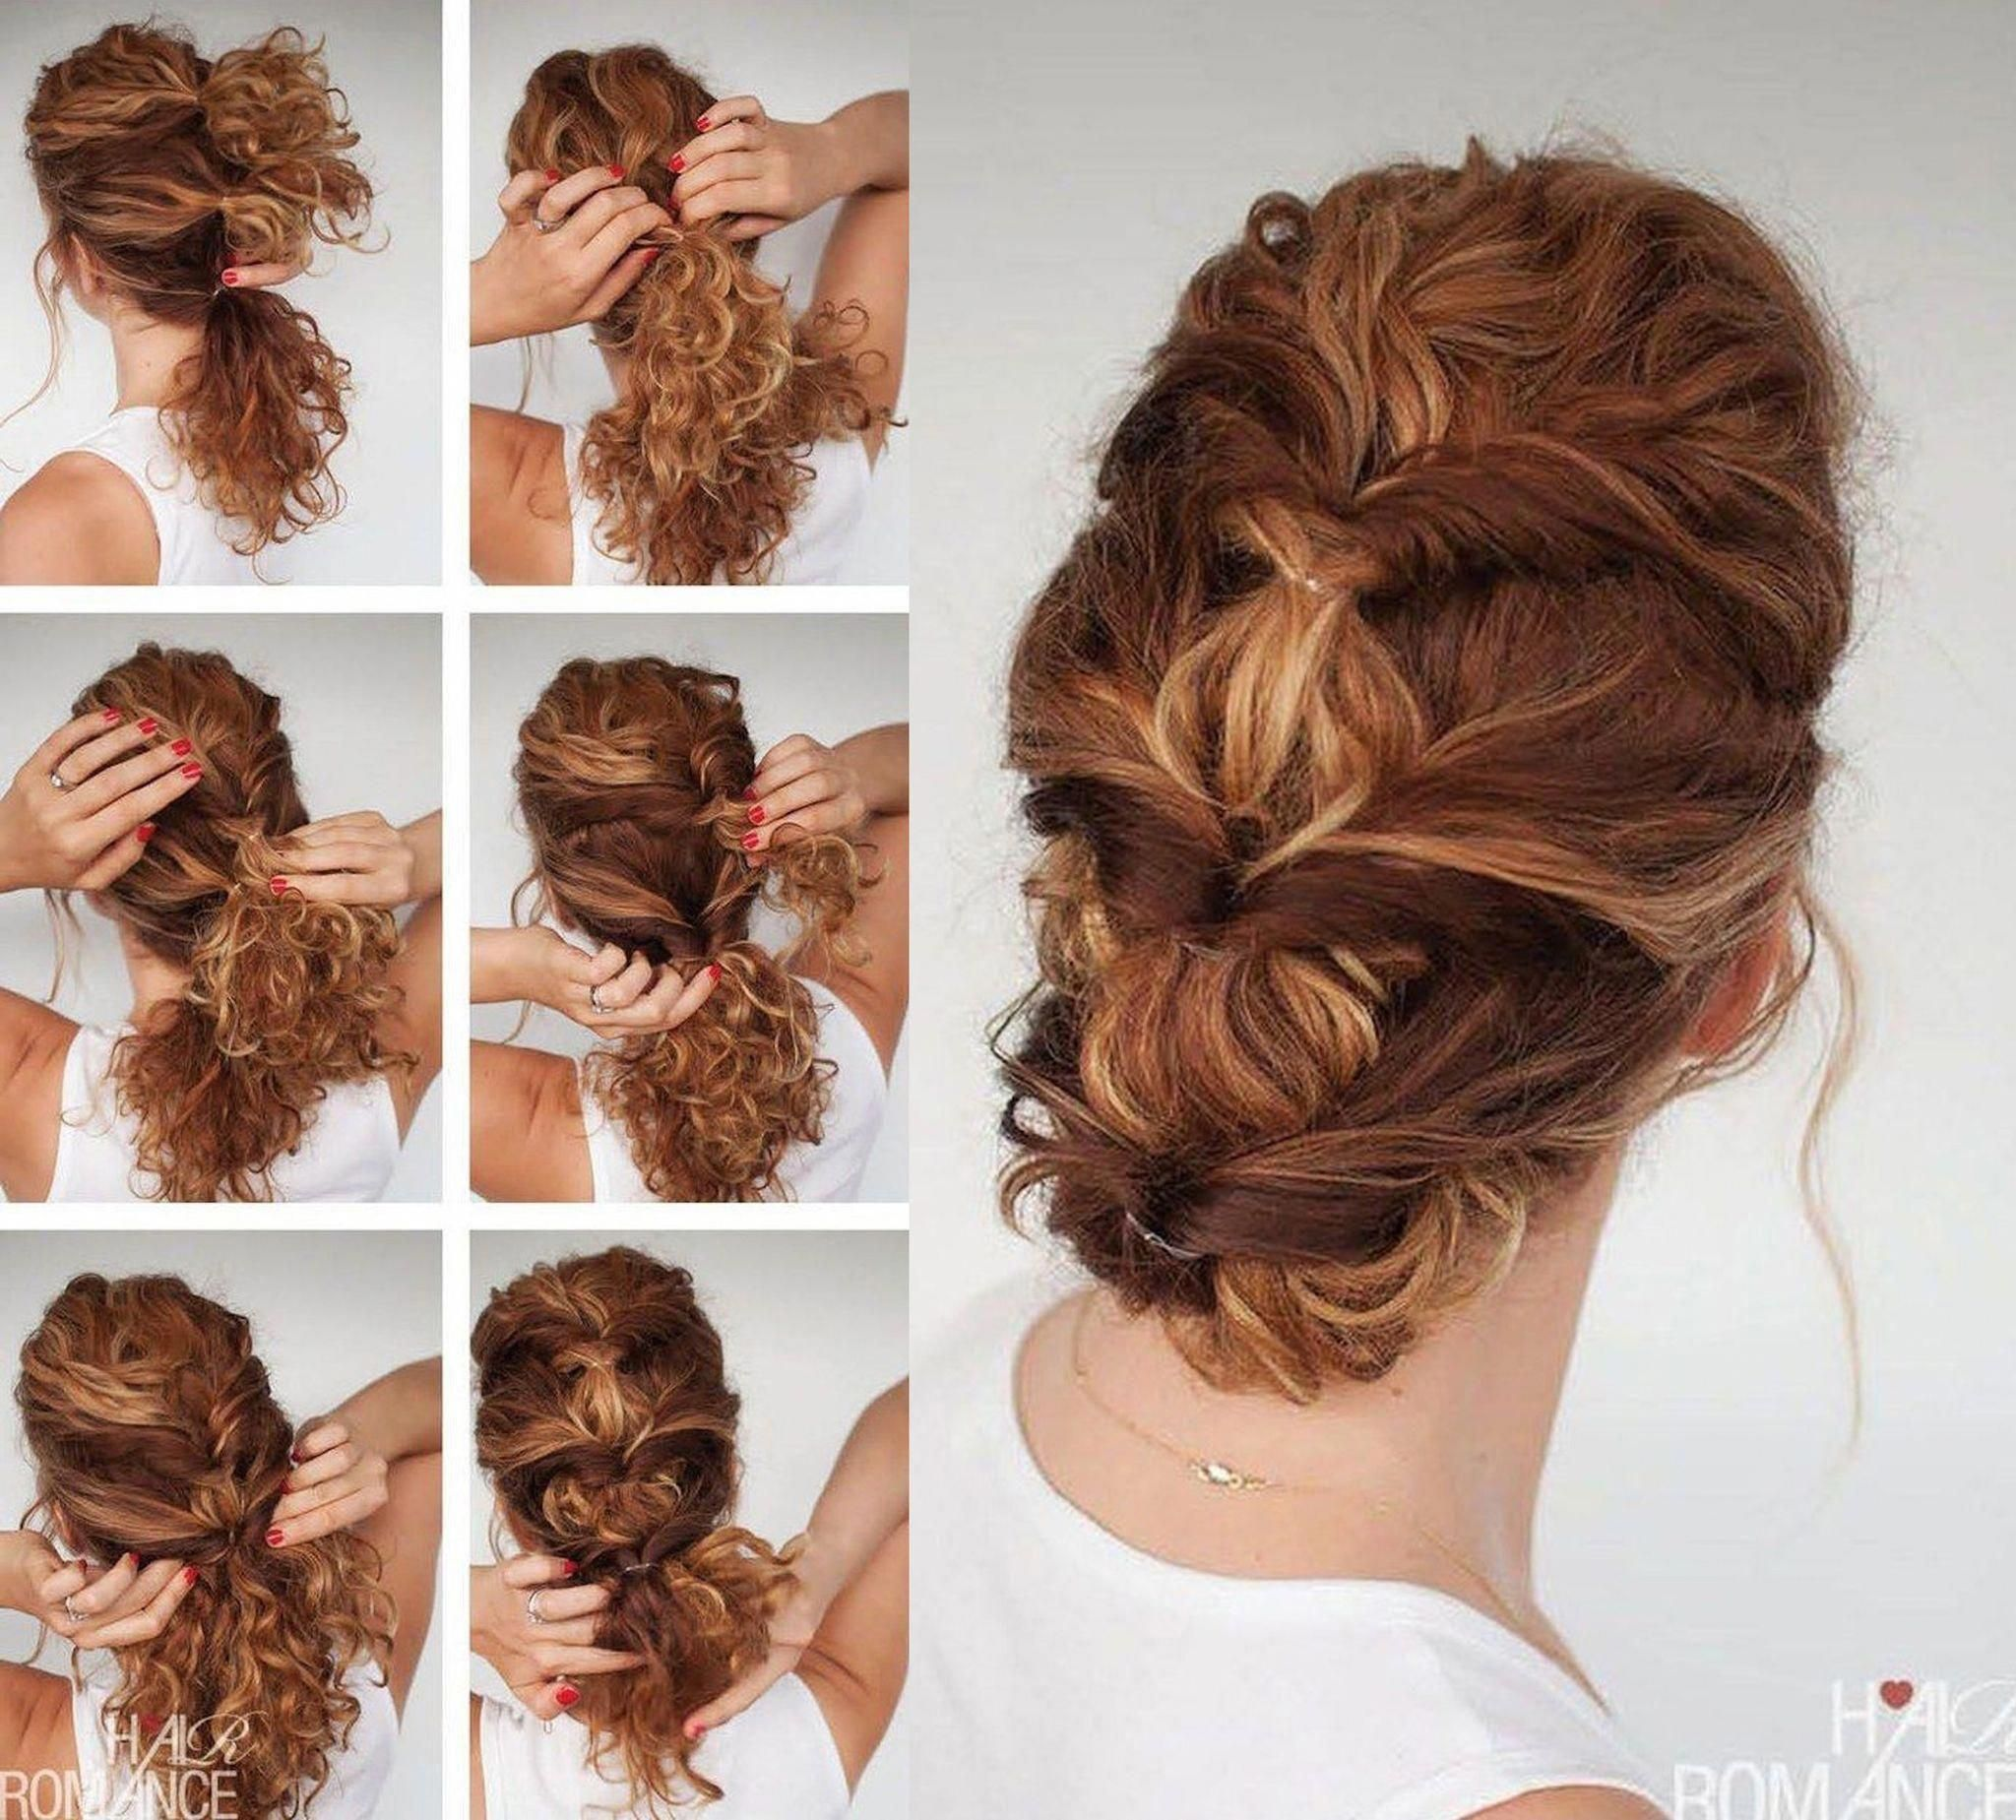 7 Easy Hairstyle Tutorials For Curly Hair Curlyhairideas Curlyhairstyles Hair Updos Tutorials Easy Hairstyles Curly Hair Styles